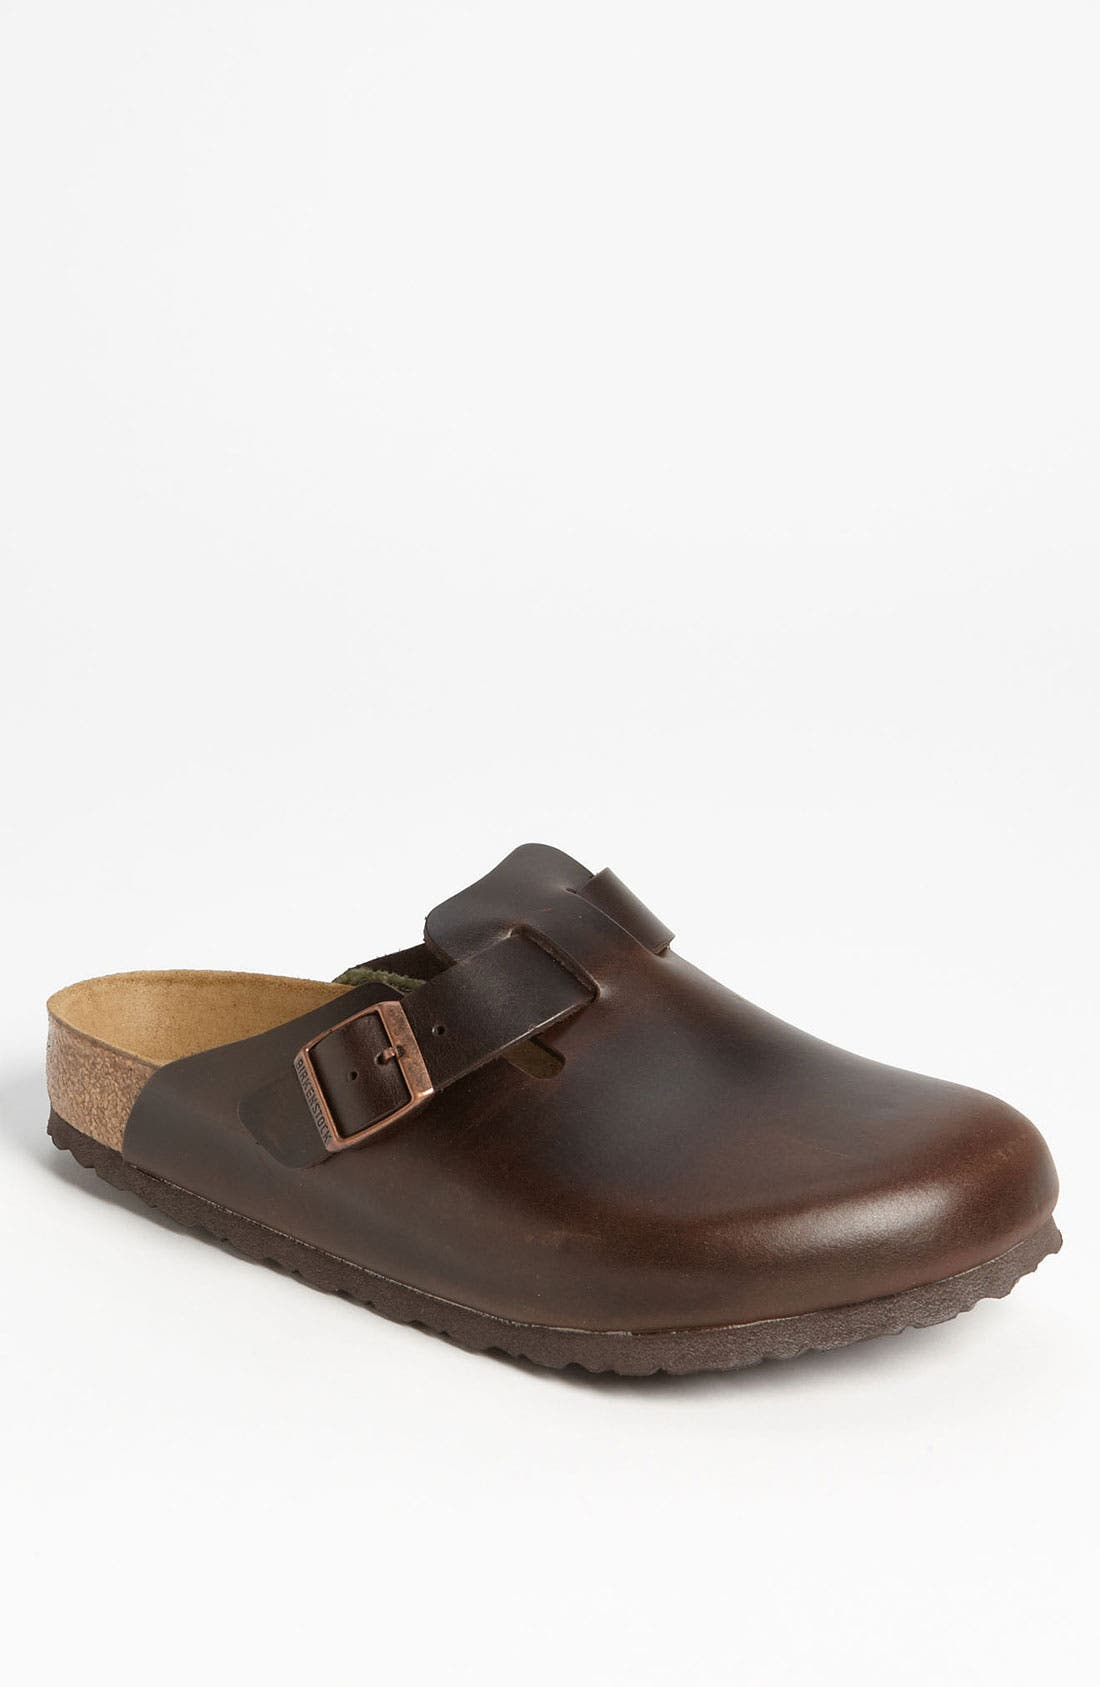 Main Image - Birkenstock 'Boston Soft' Clog   (Men)